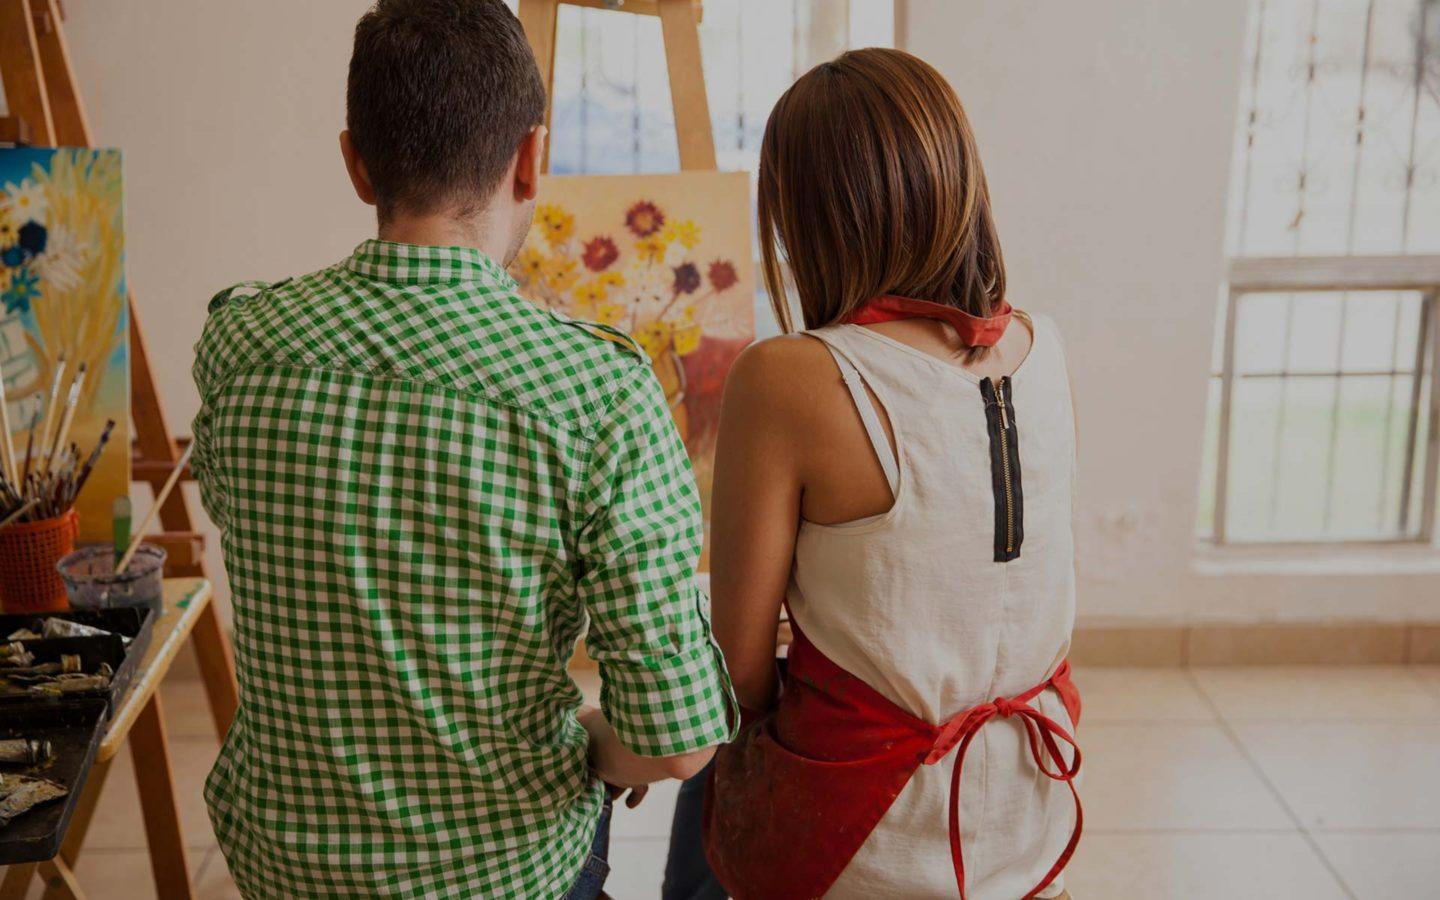 a man wearing a green shirt sits next to.a woman wearing a red apron, both are painting on an easel